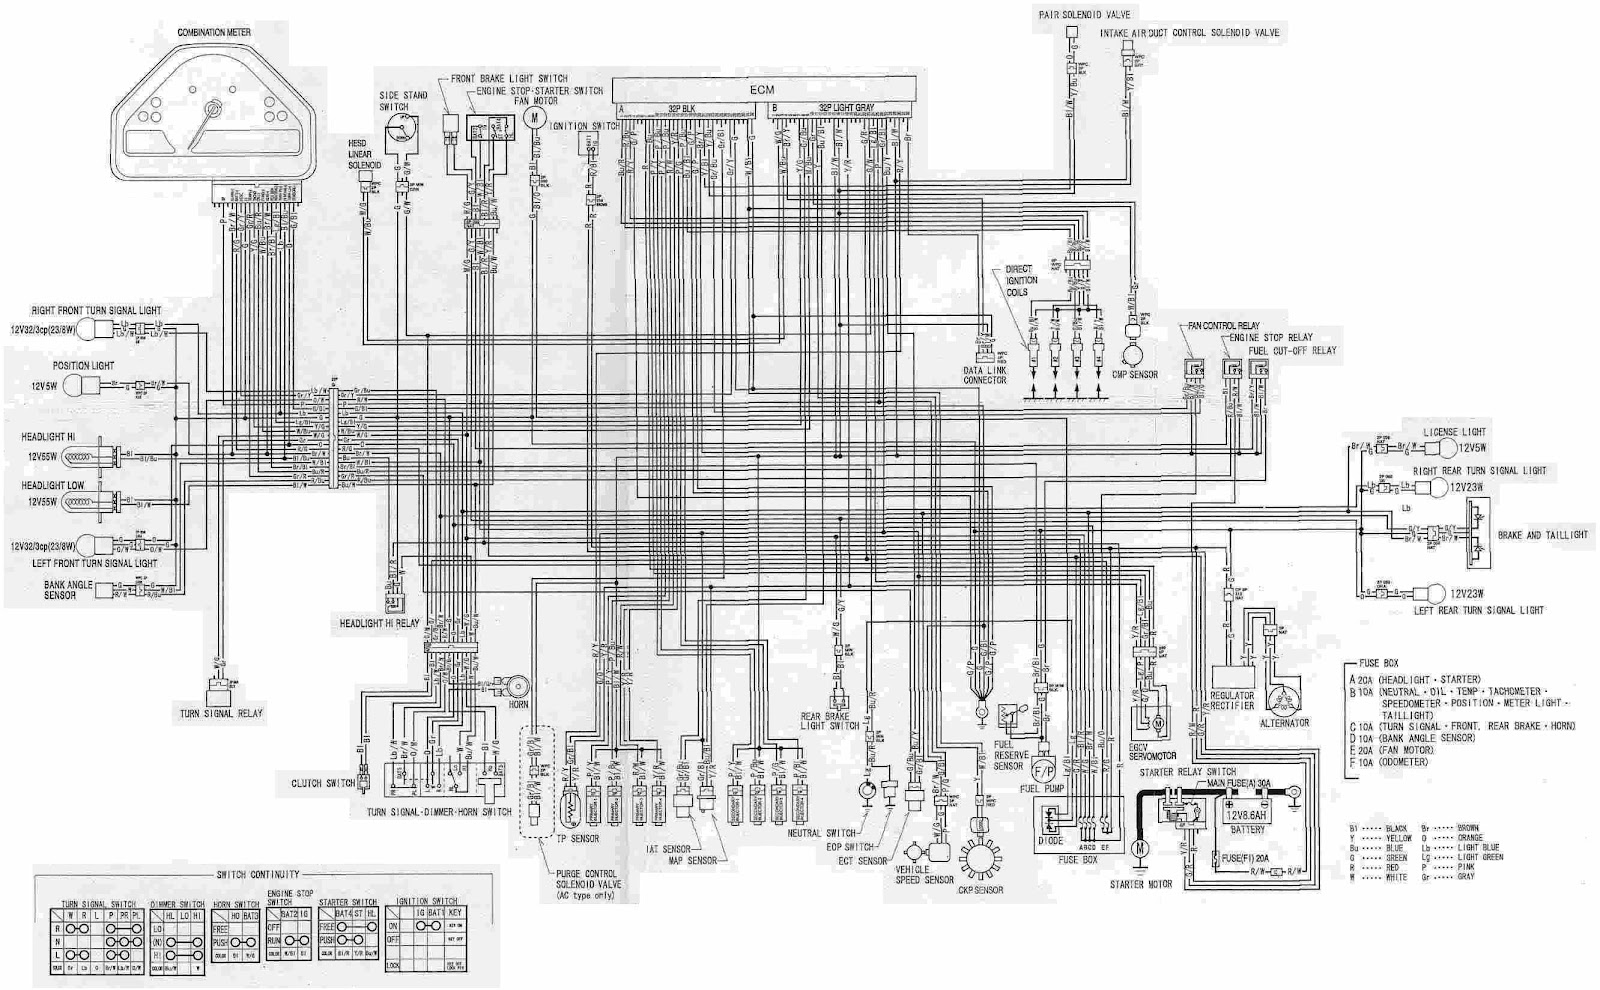 2005 Honda Shadow Wiring Diagram Auto Electrical 800t Pb Fascinating Hor Cb600f Images